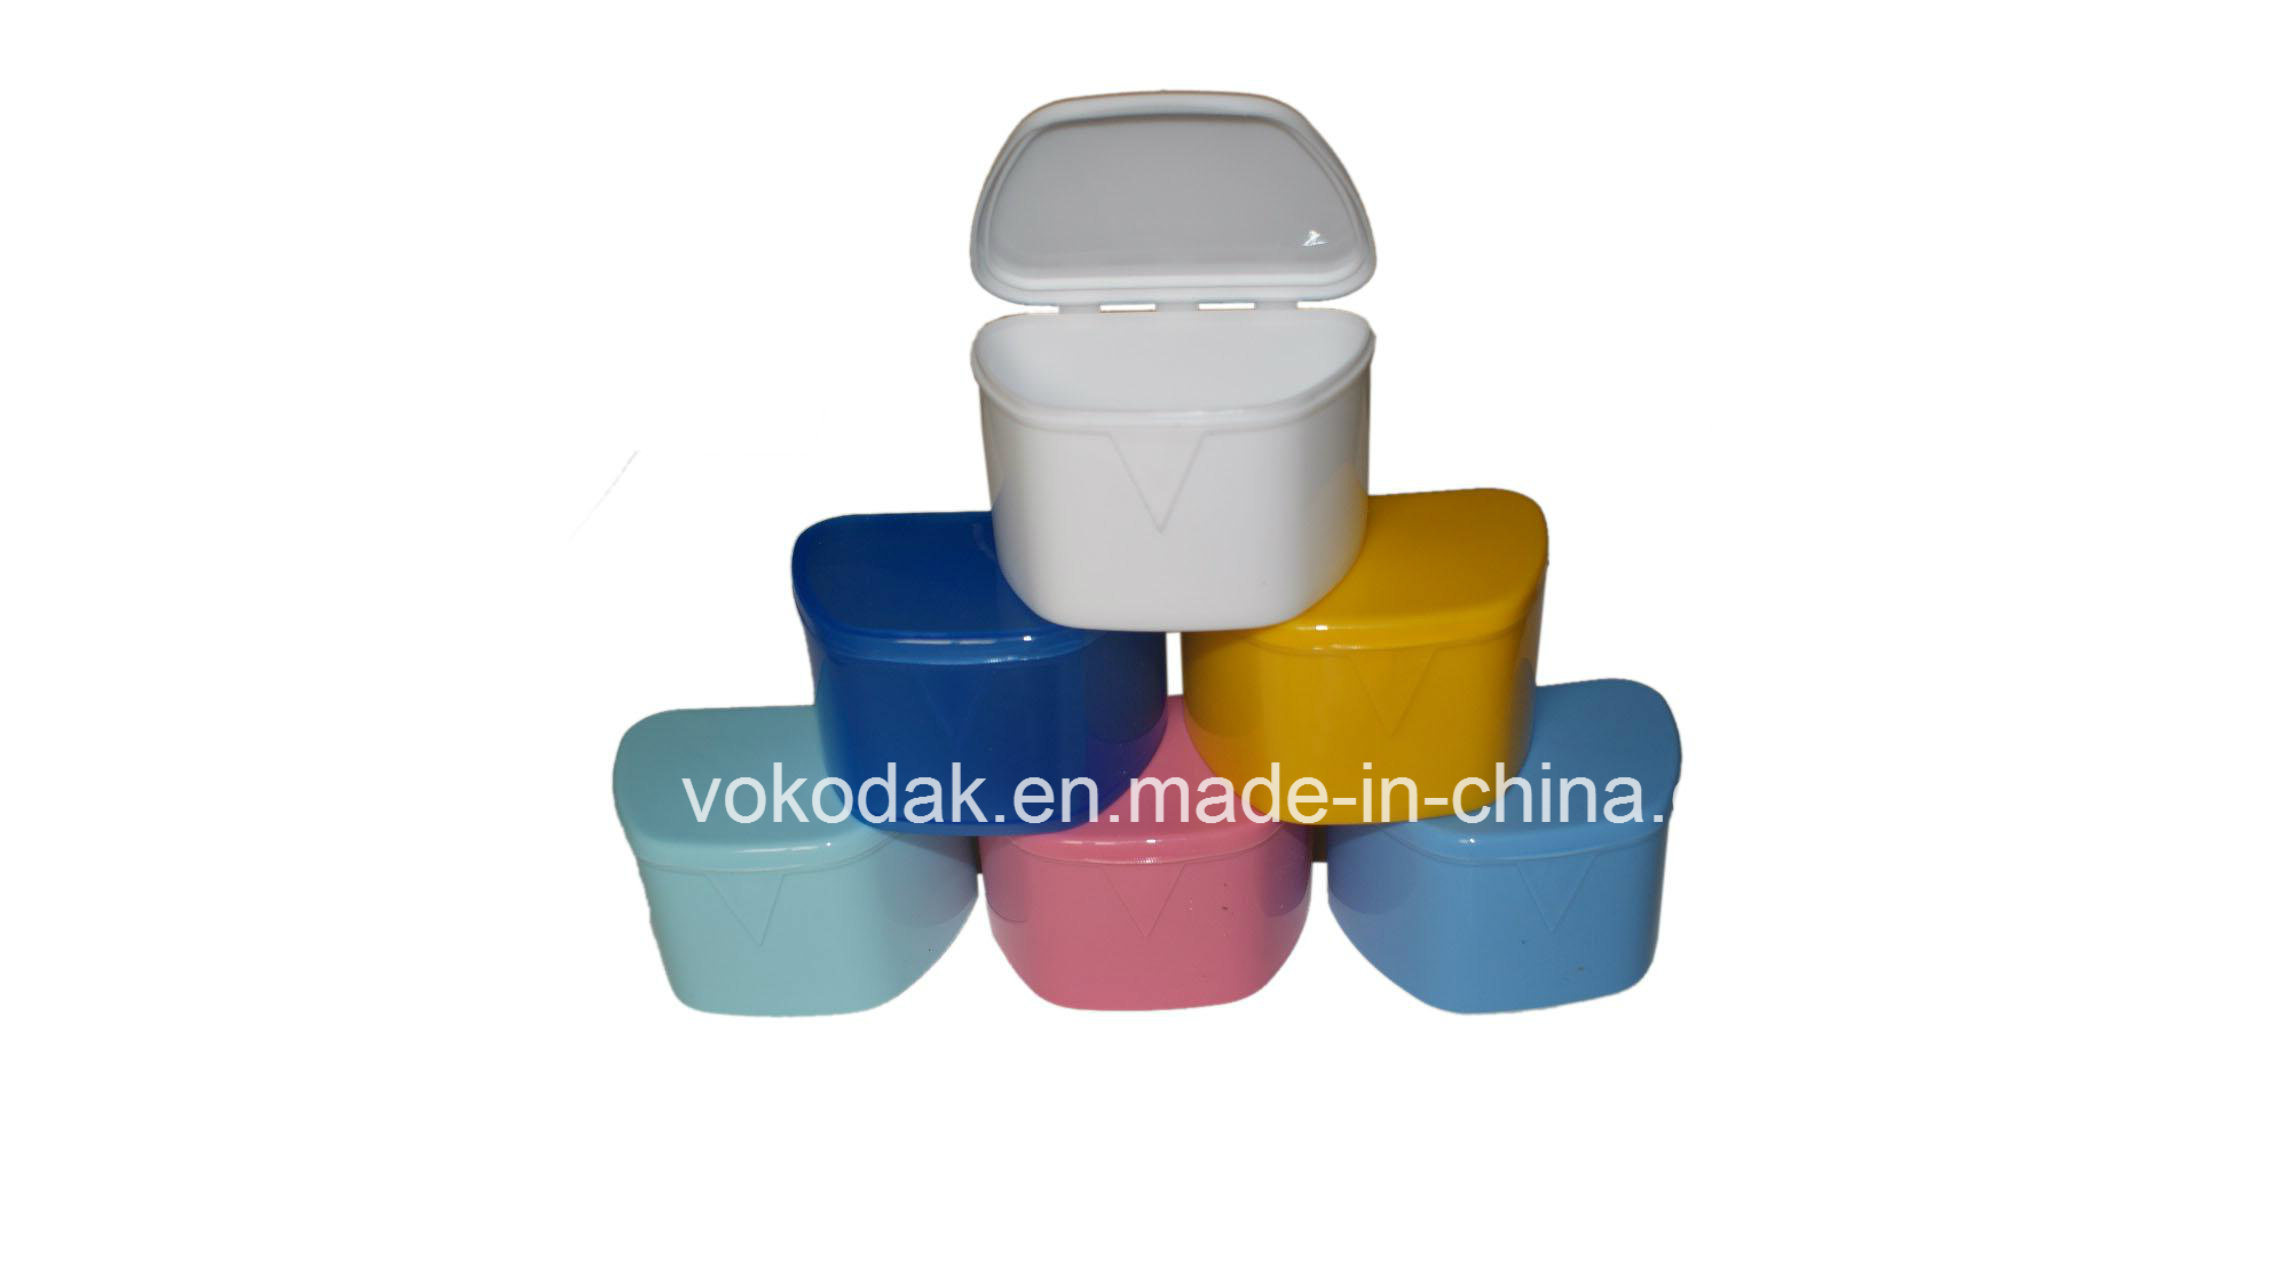 Plastics Colorful Denture Placed Box Dental Equipment